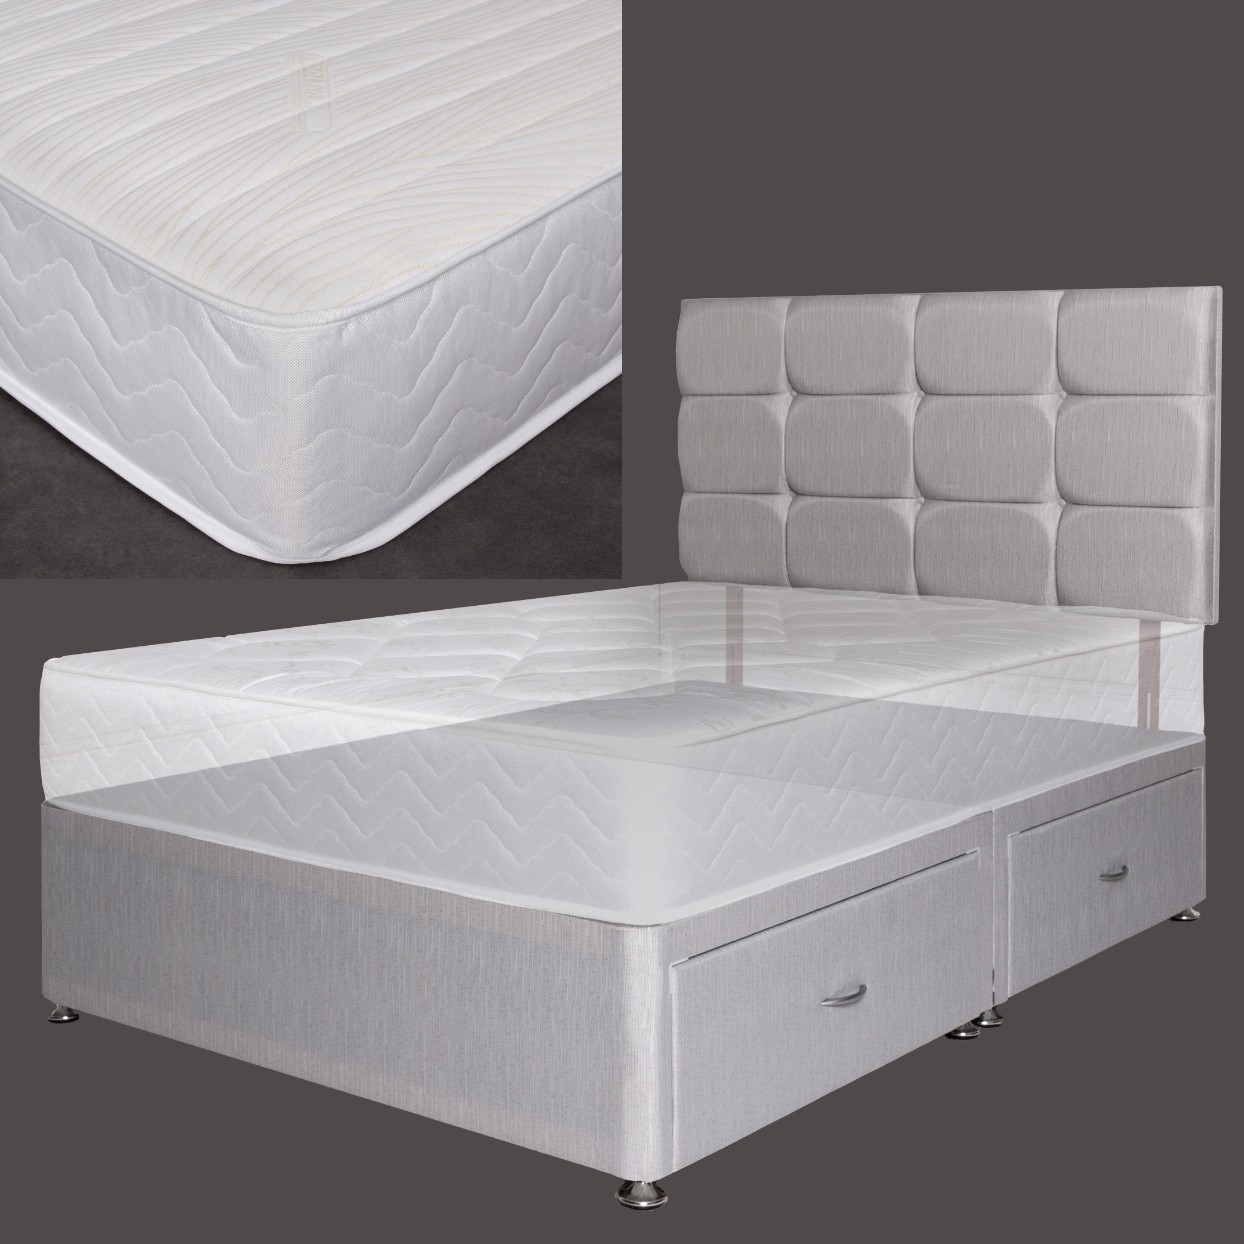 Double Divan Beds Double Premium Pocket Rolled Mattress With Platform Divan Bed Set